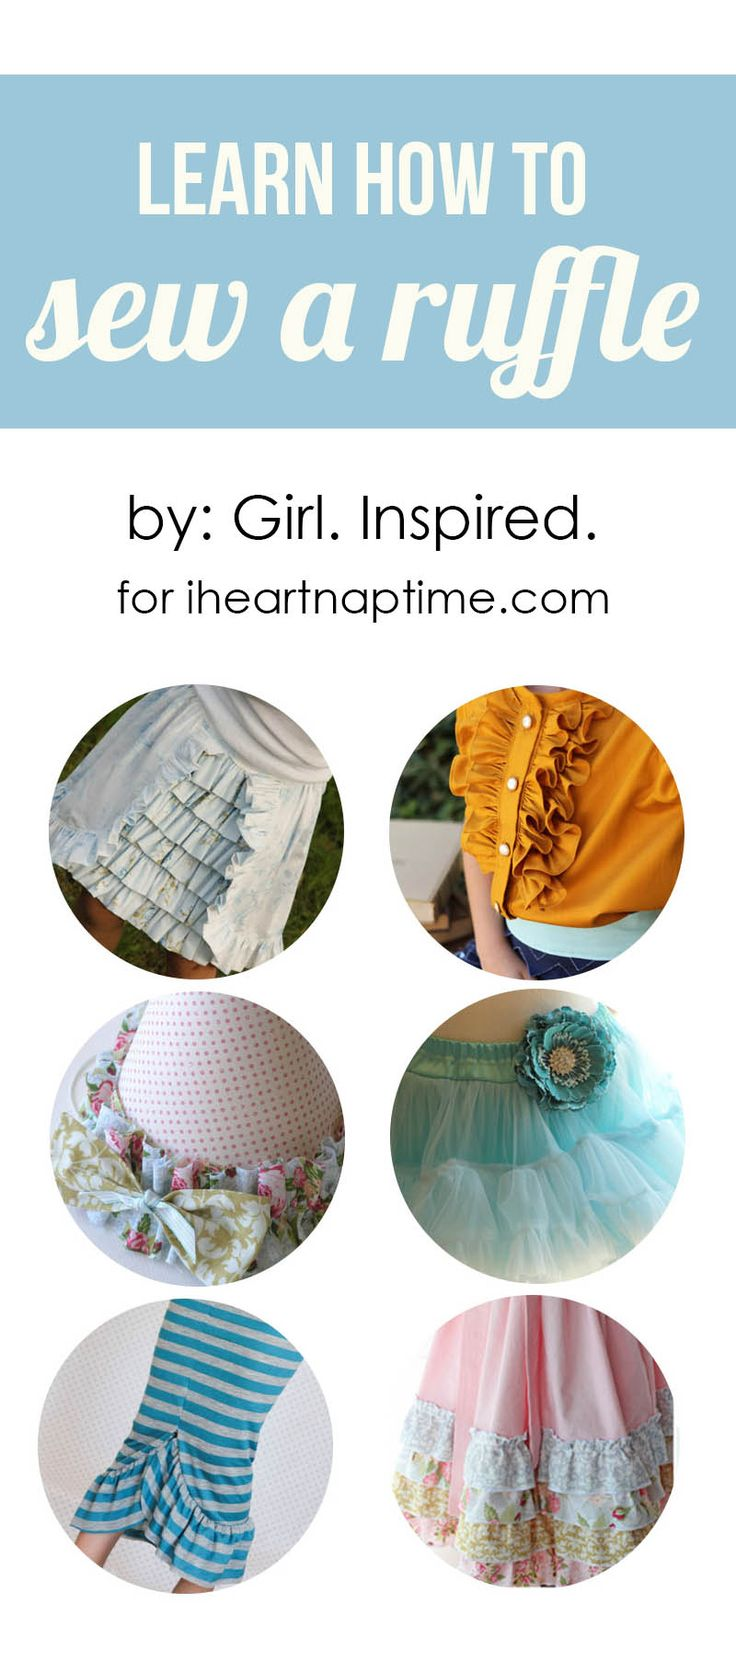 Learn how to sew a ruffle #DIY #sewing #tutorial